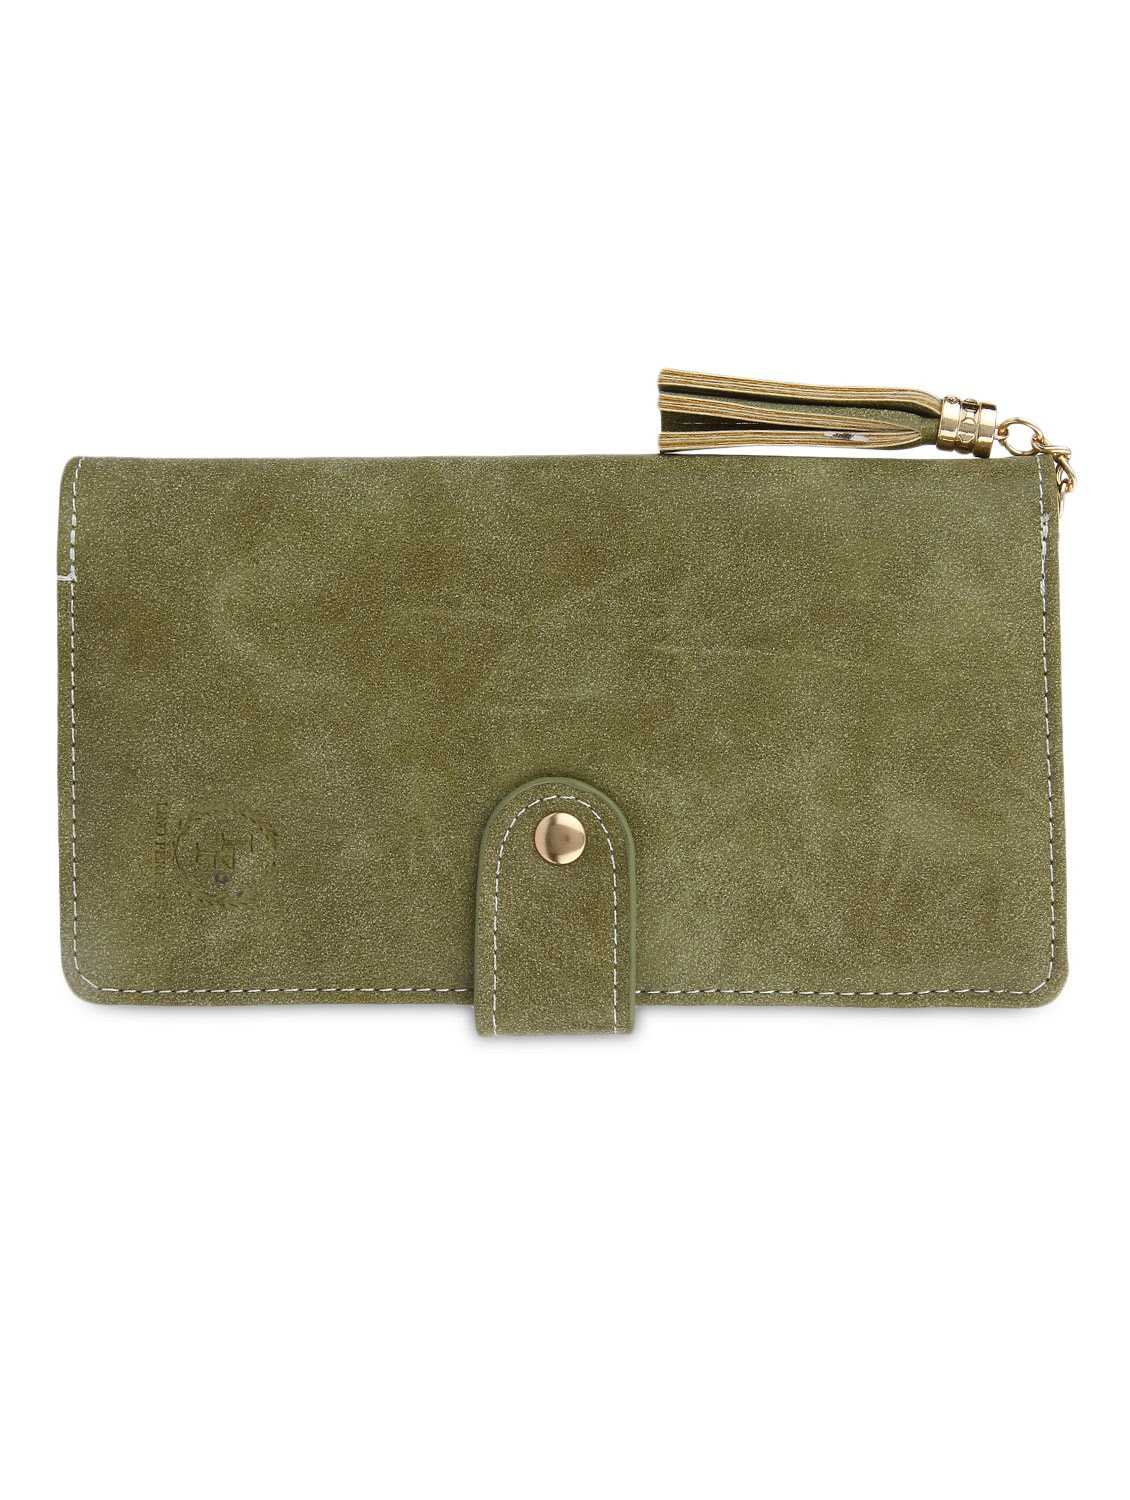 Green Leatherette Sling Bag - By